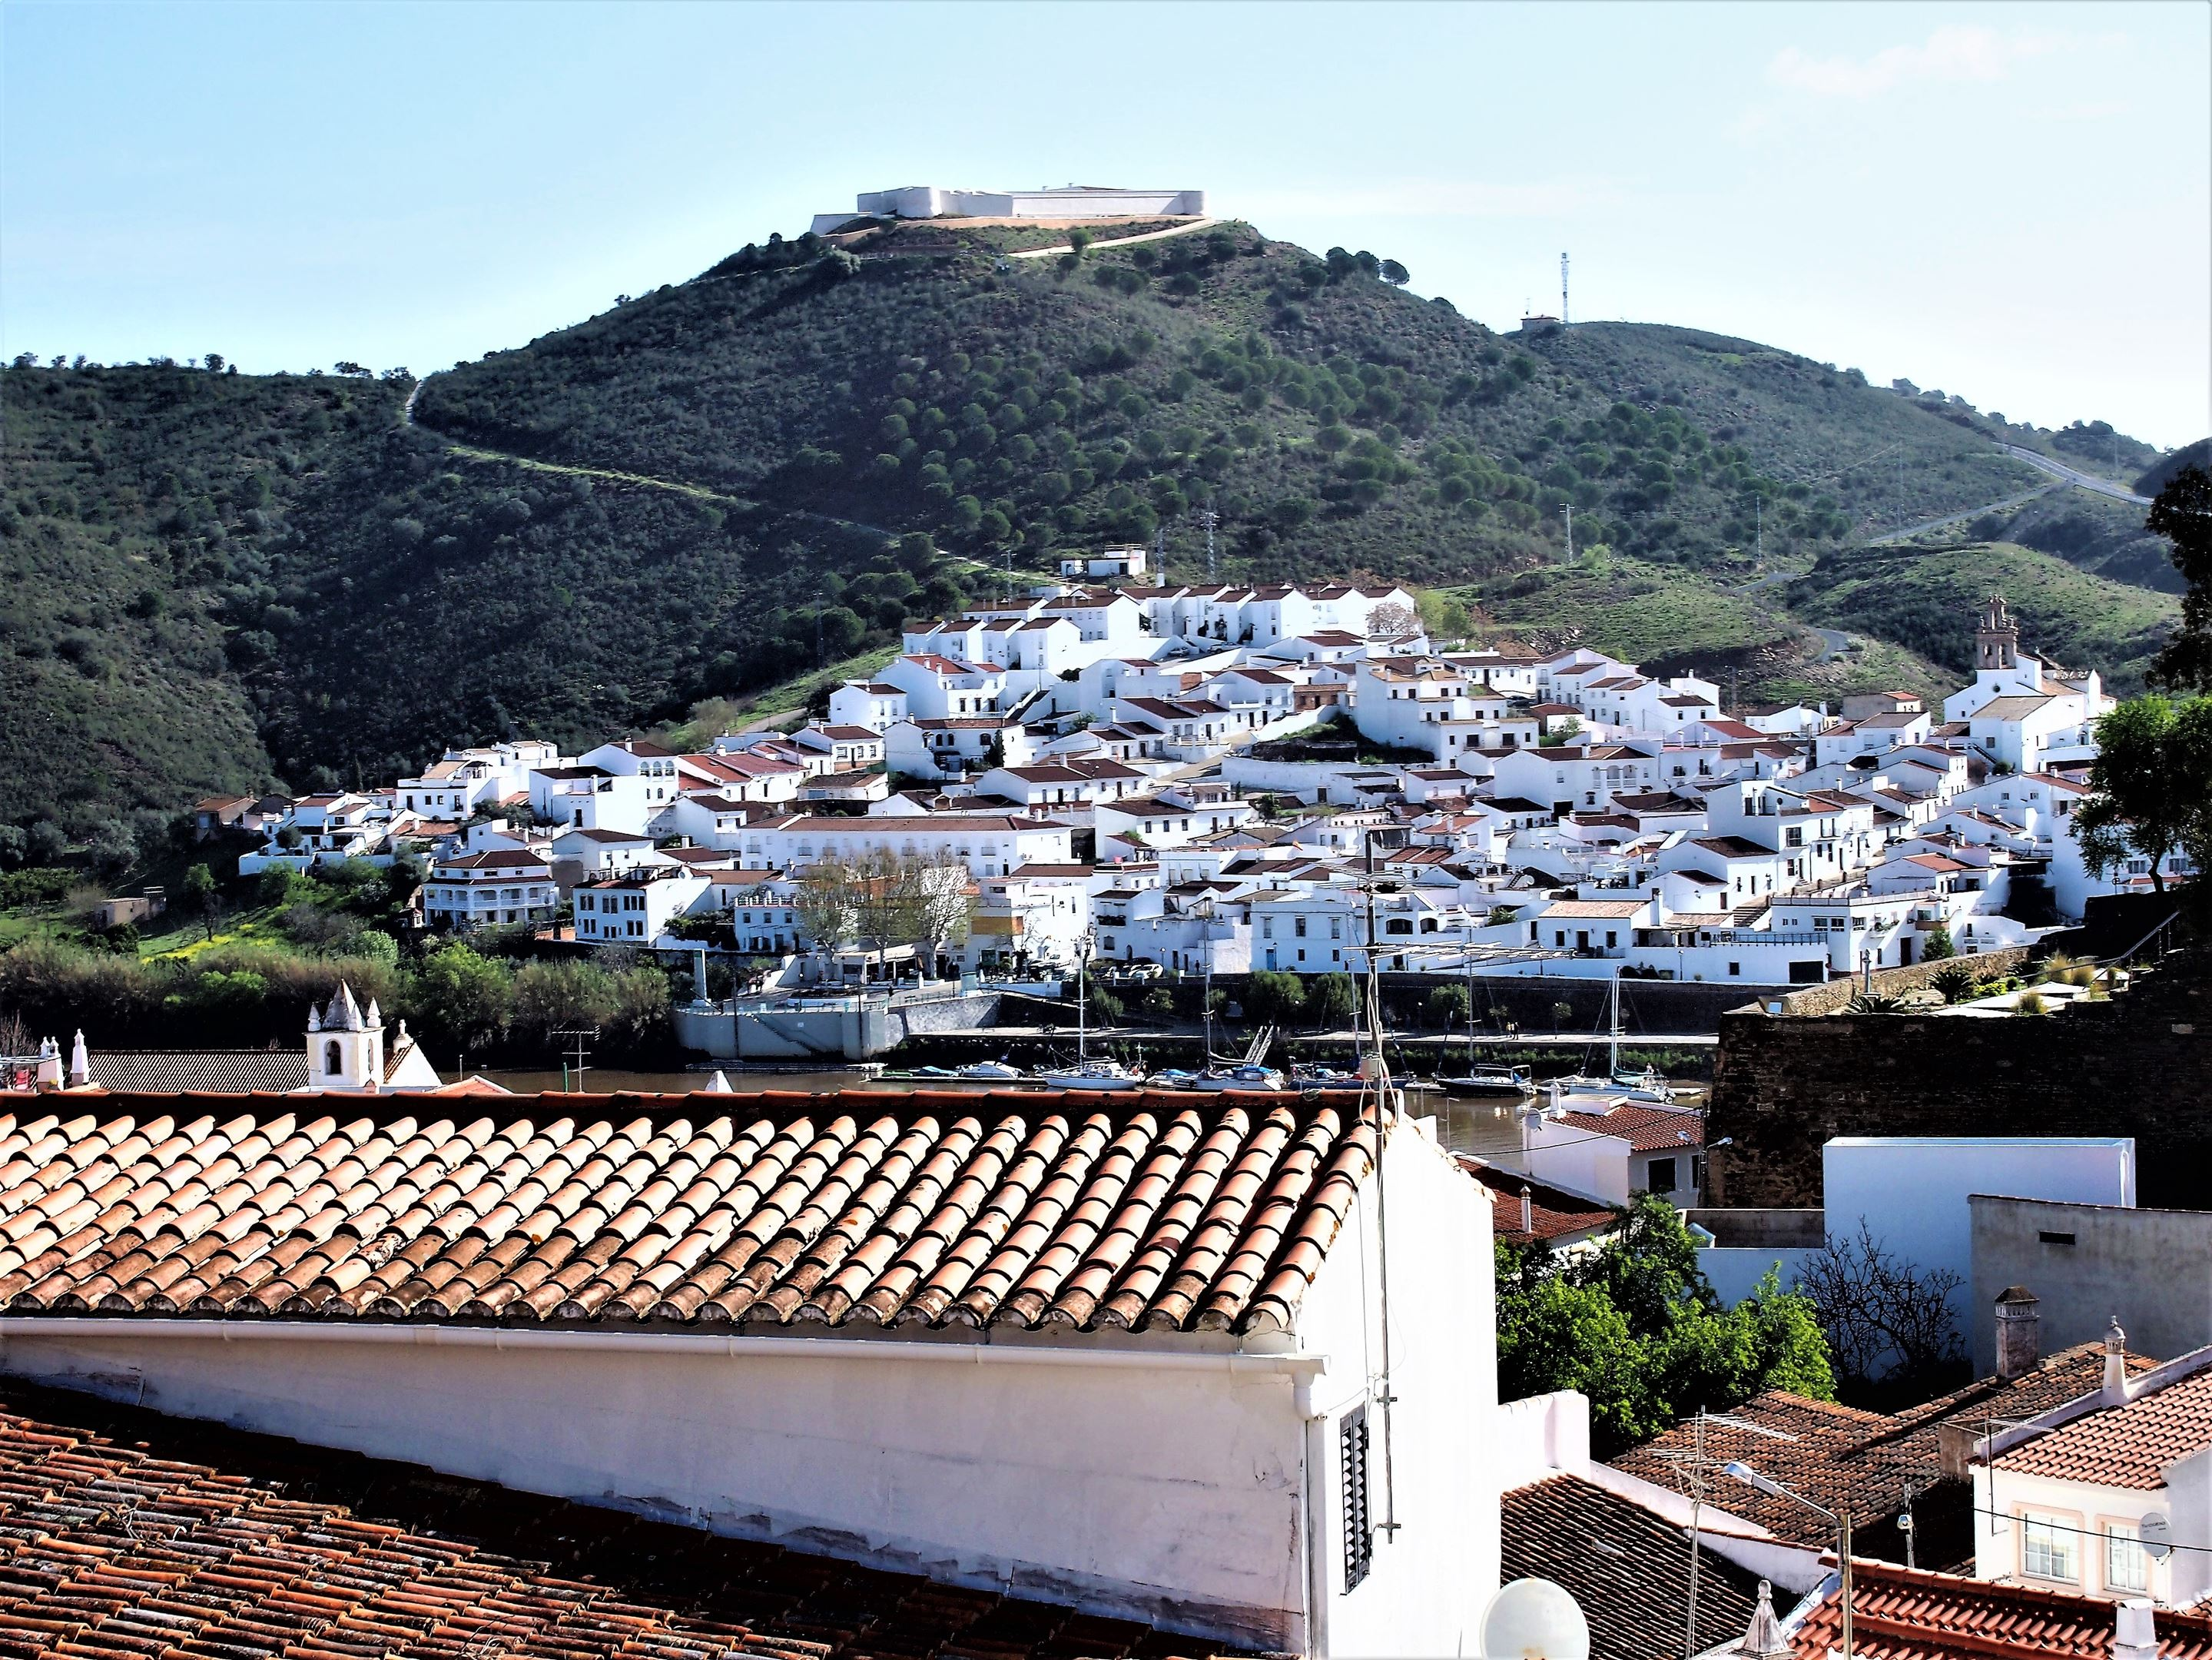 Across the Guadiana River, Sanlúcar de Guadiana, Spain with the castle at the top of the hill